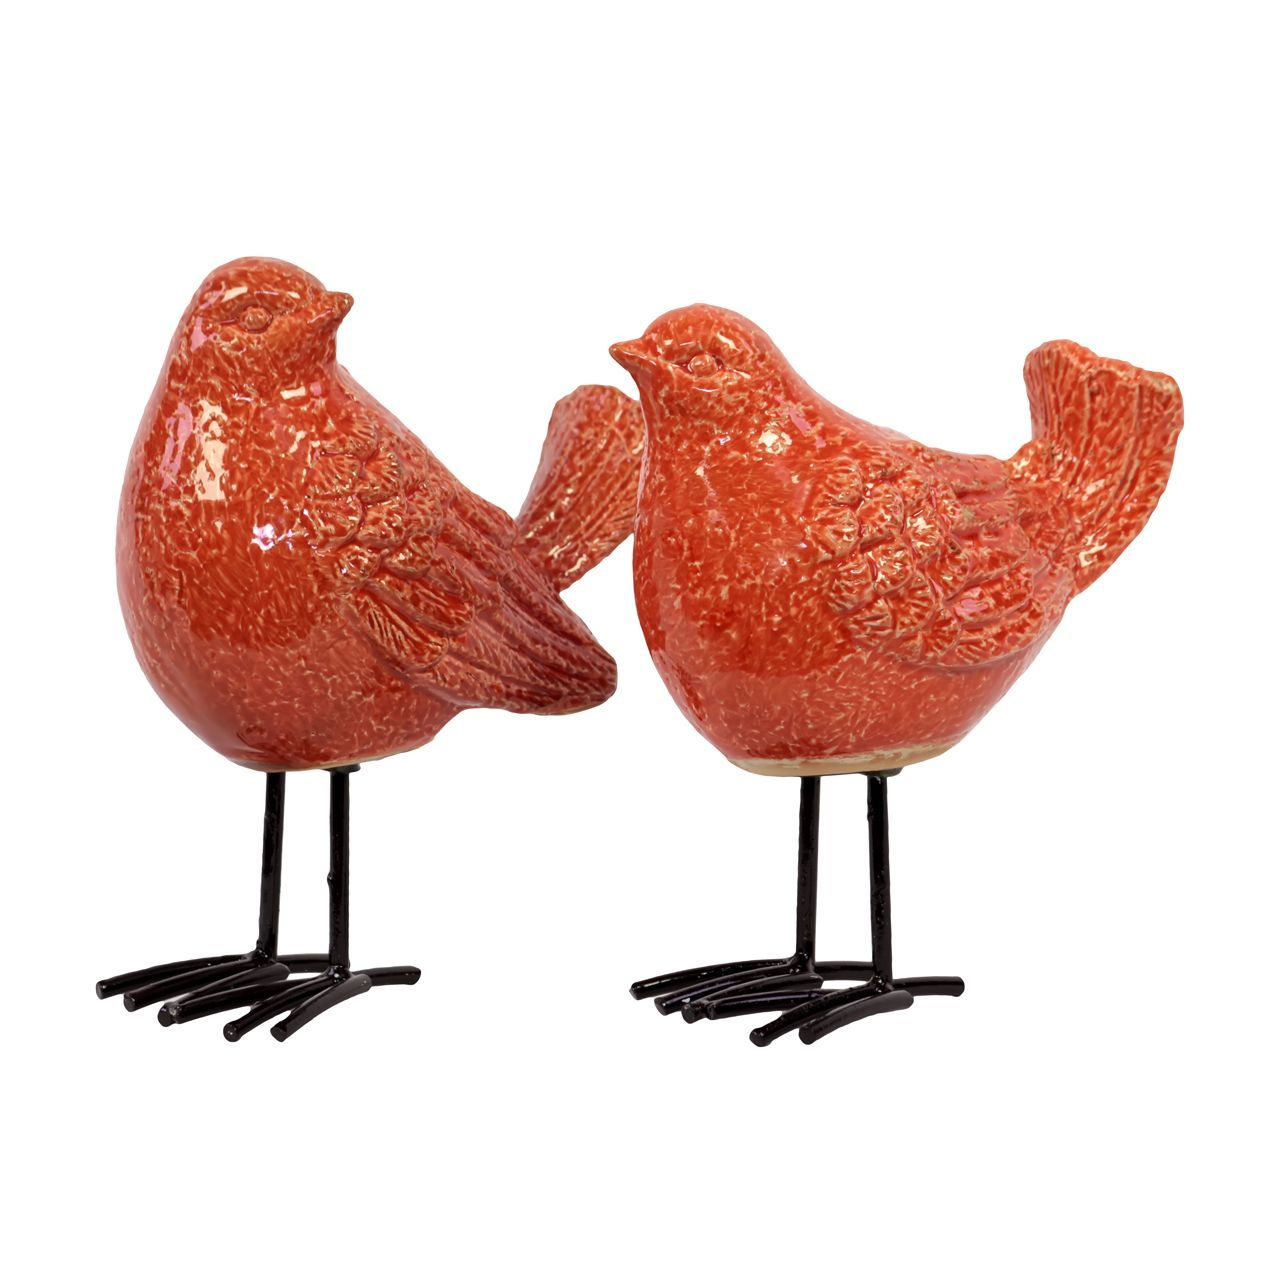 Urban Trends Collection Glossy Finish Bird Figurine with with Long Metal Legs